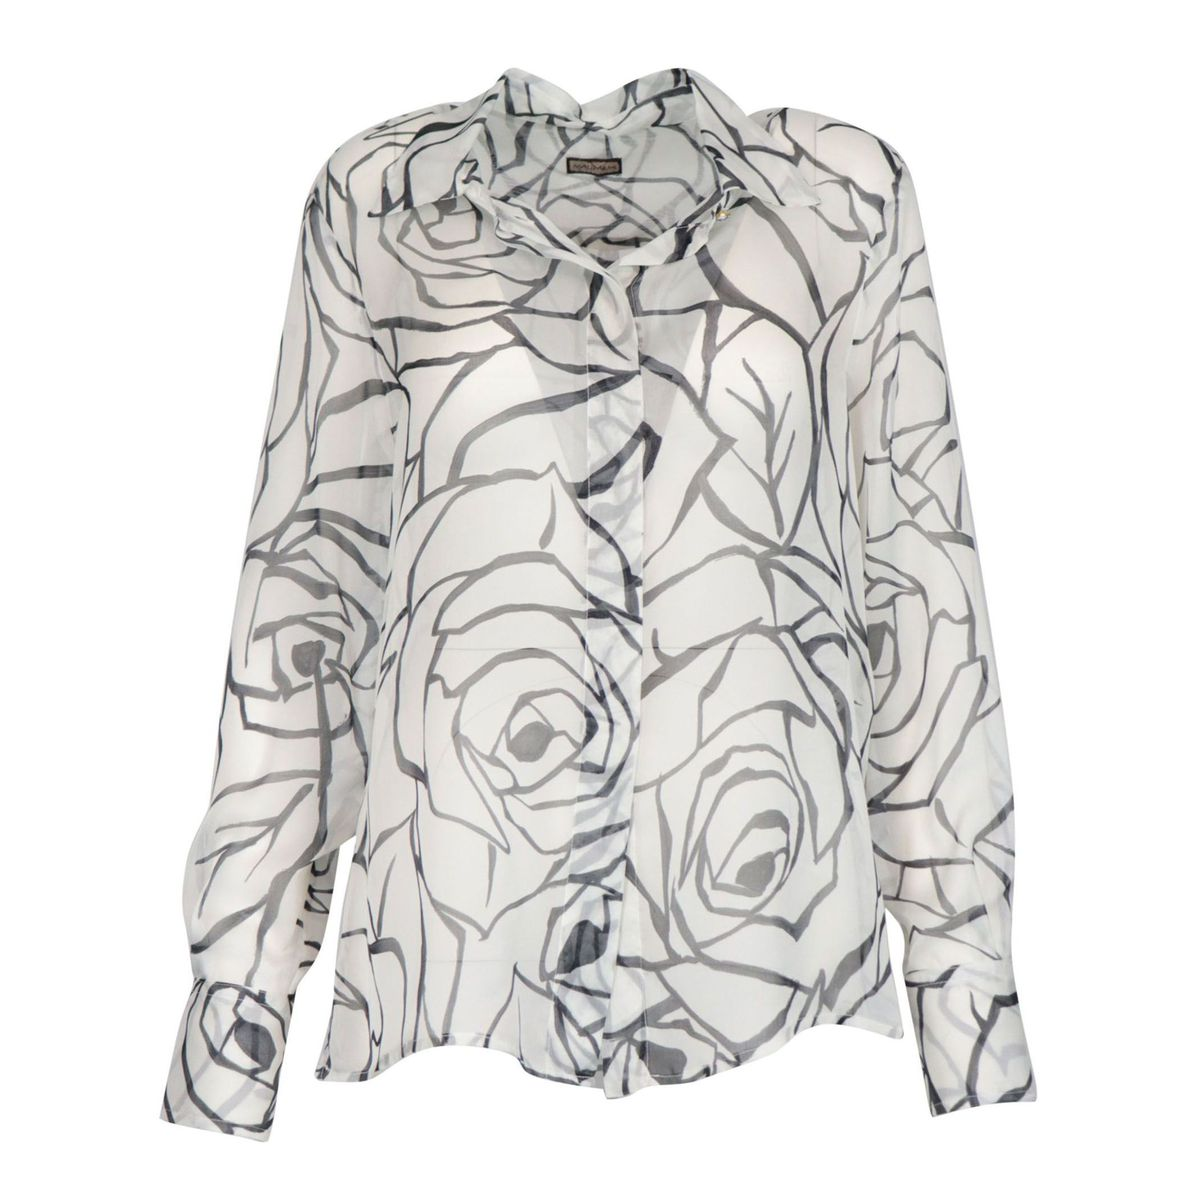 Patterned silk shirt White black Maliparmi